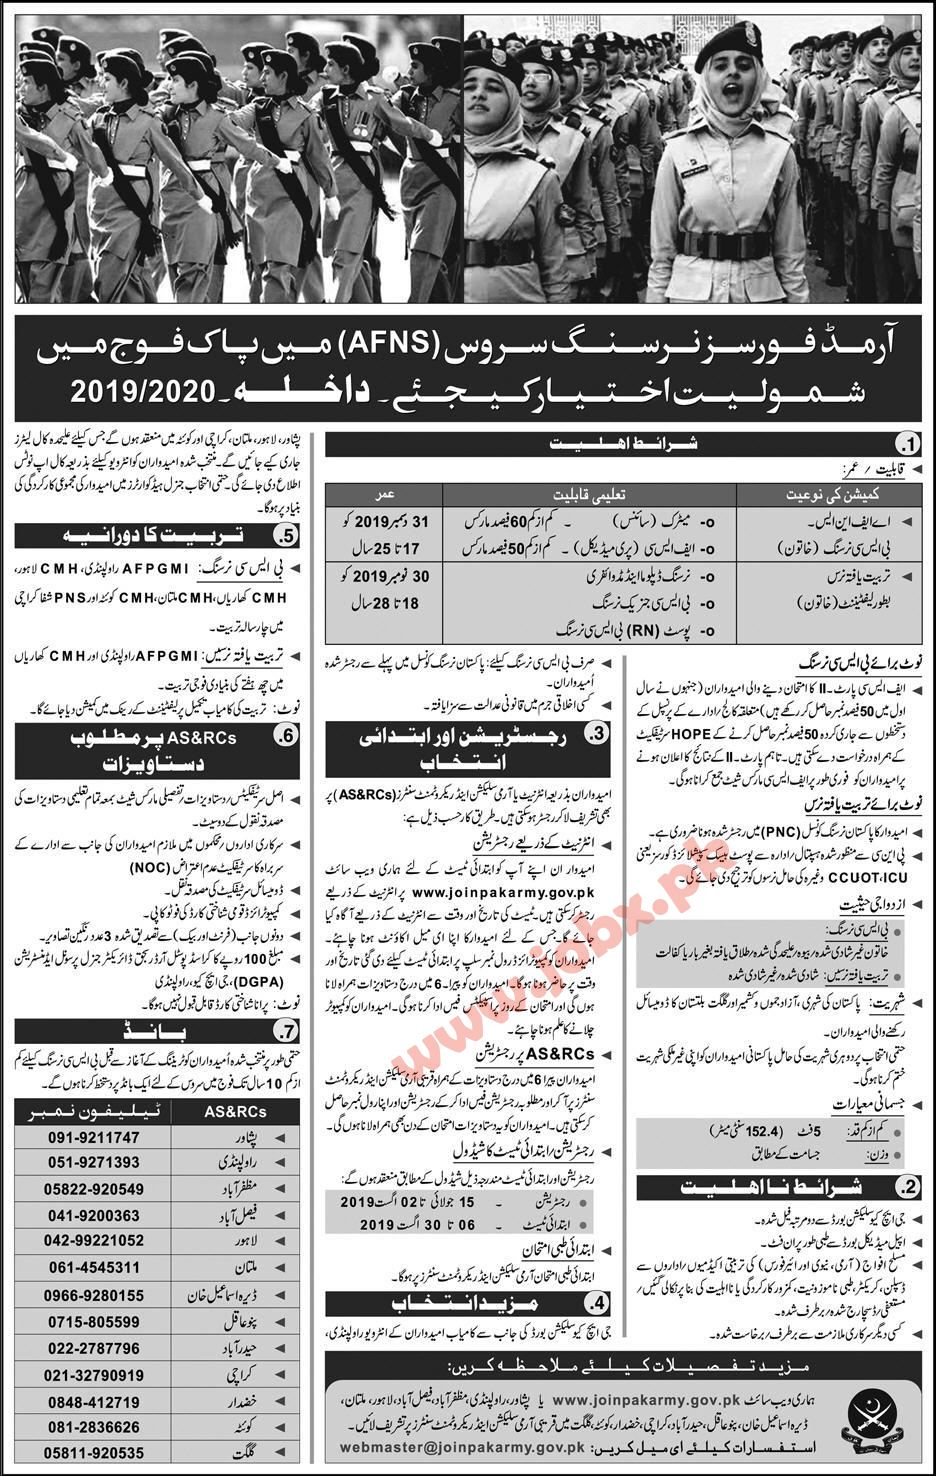 AFNS Nursing Services Jobs in Pakistan Army for Females 14 July 2019